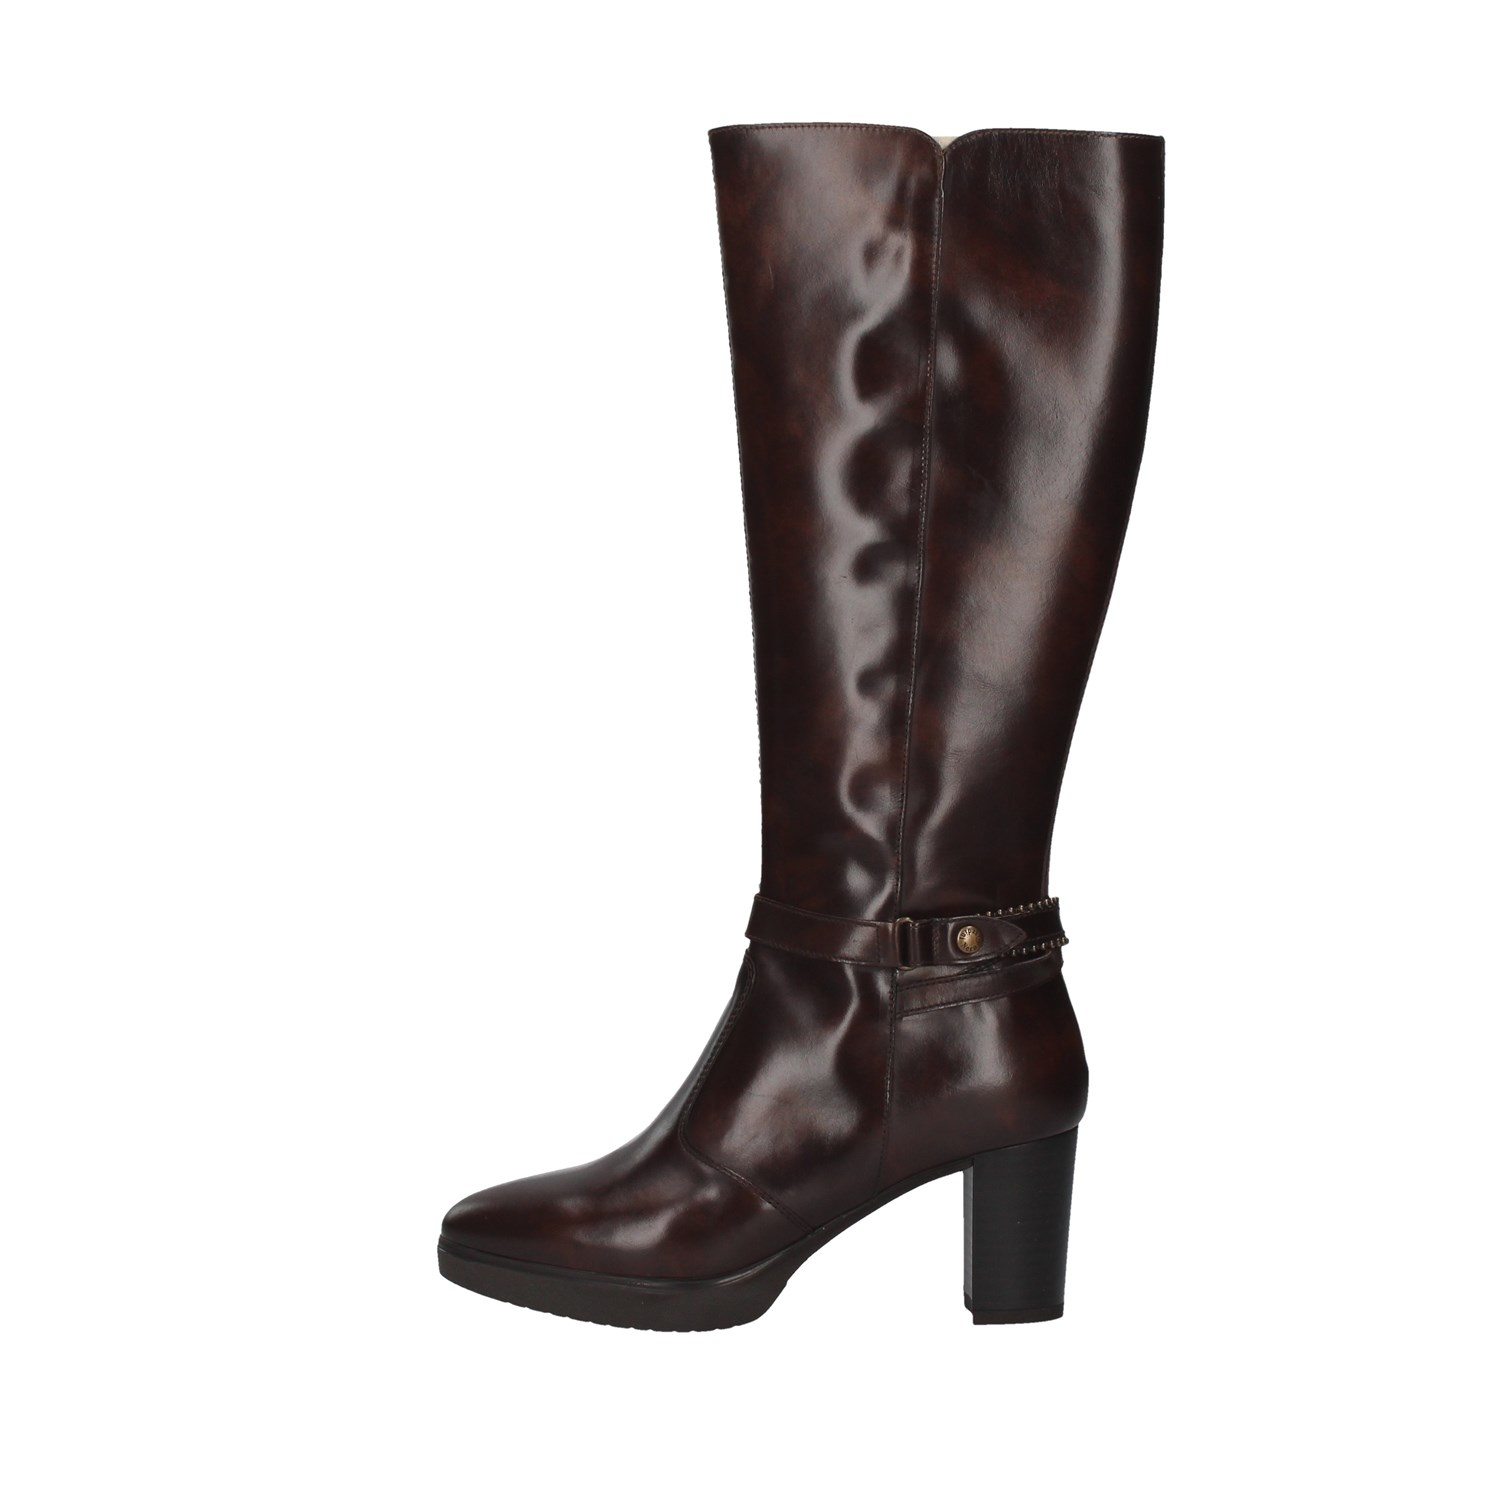 Nero Giardini Shoes Woman Under the knee BROWN I014000D